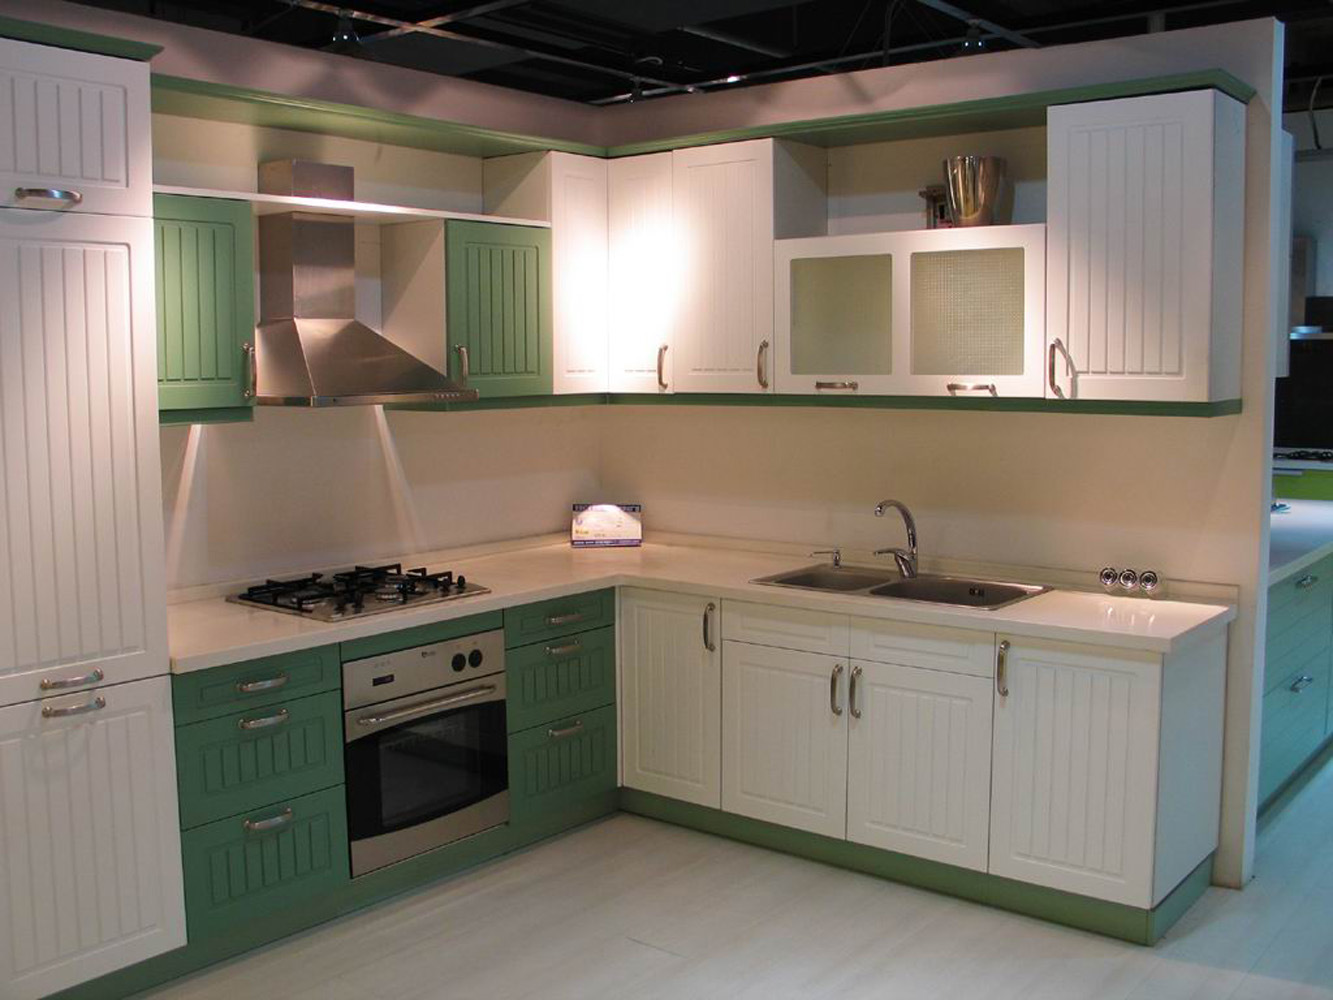 Kitchen Cabinets Made Of Pvc